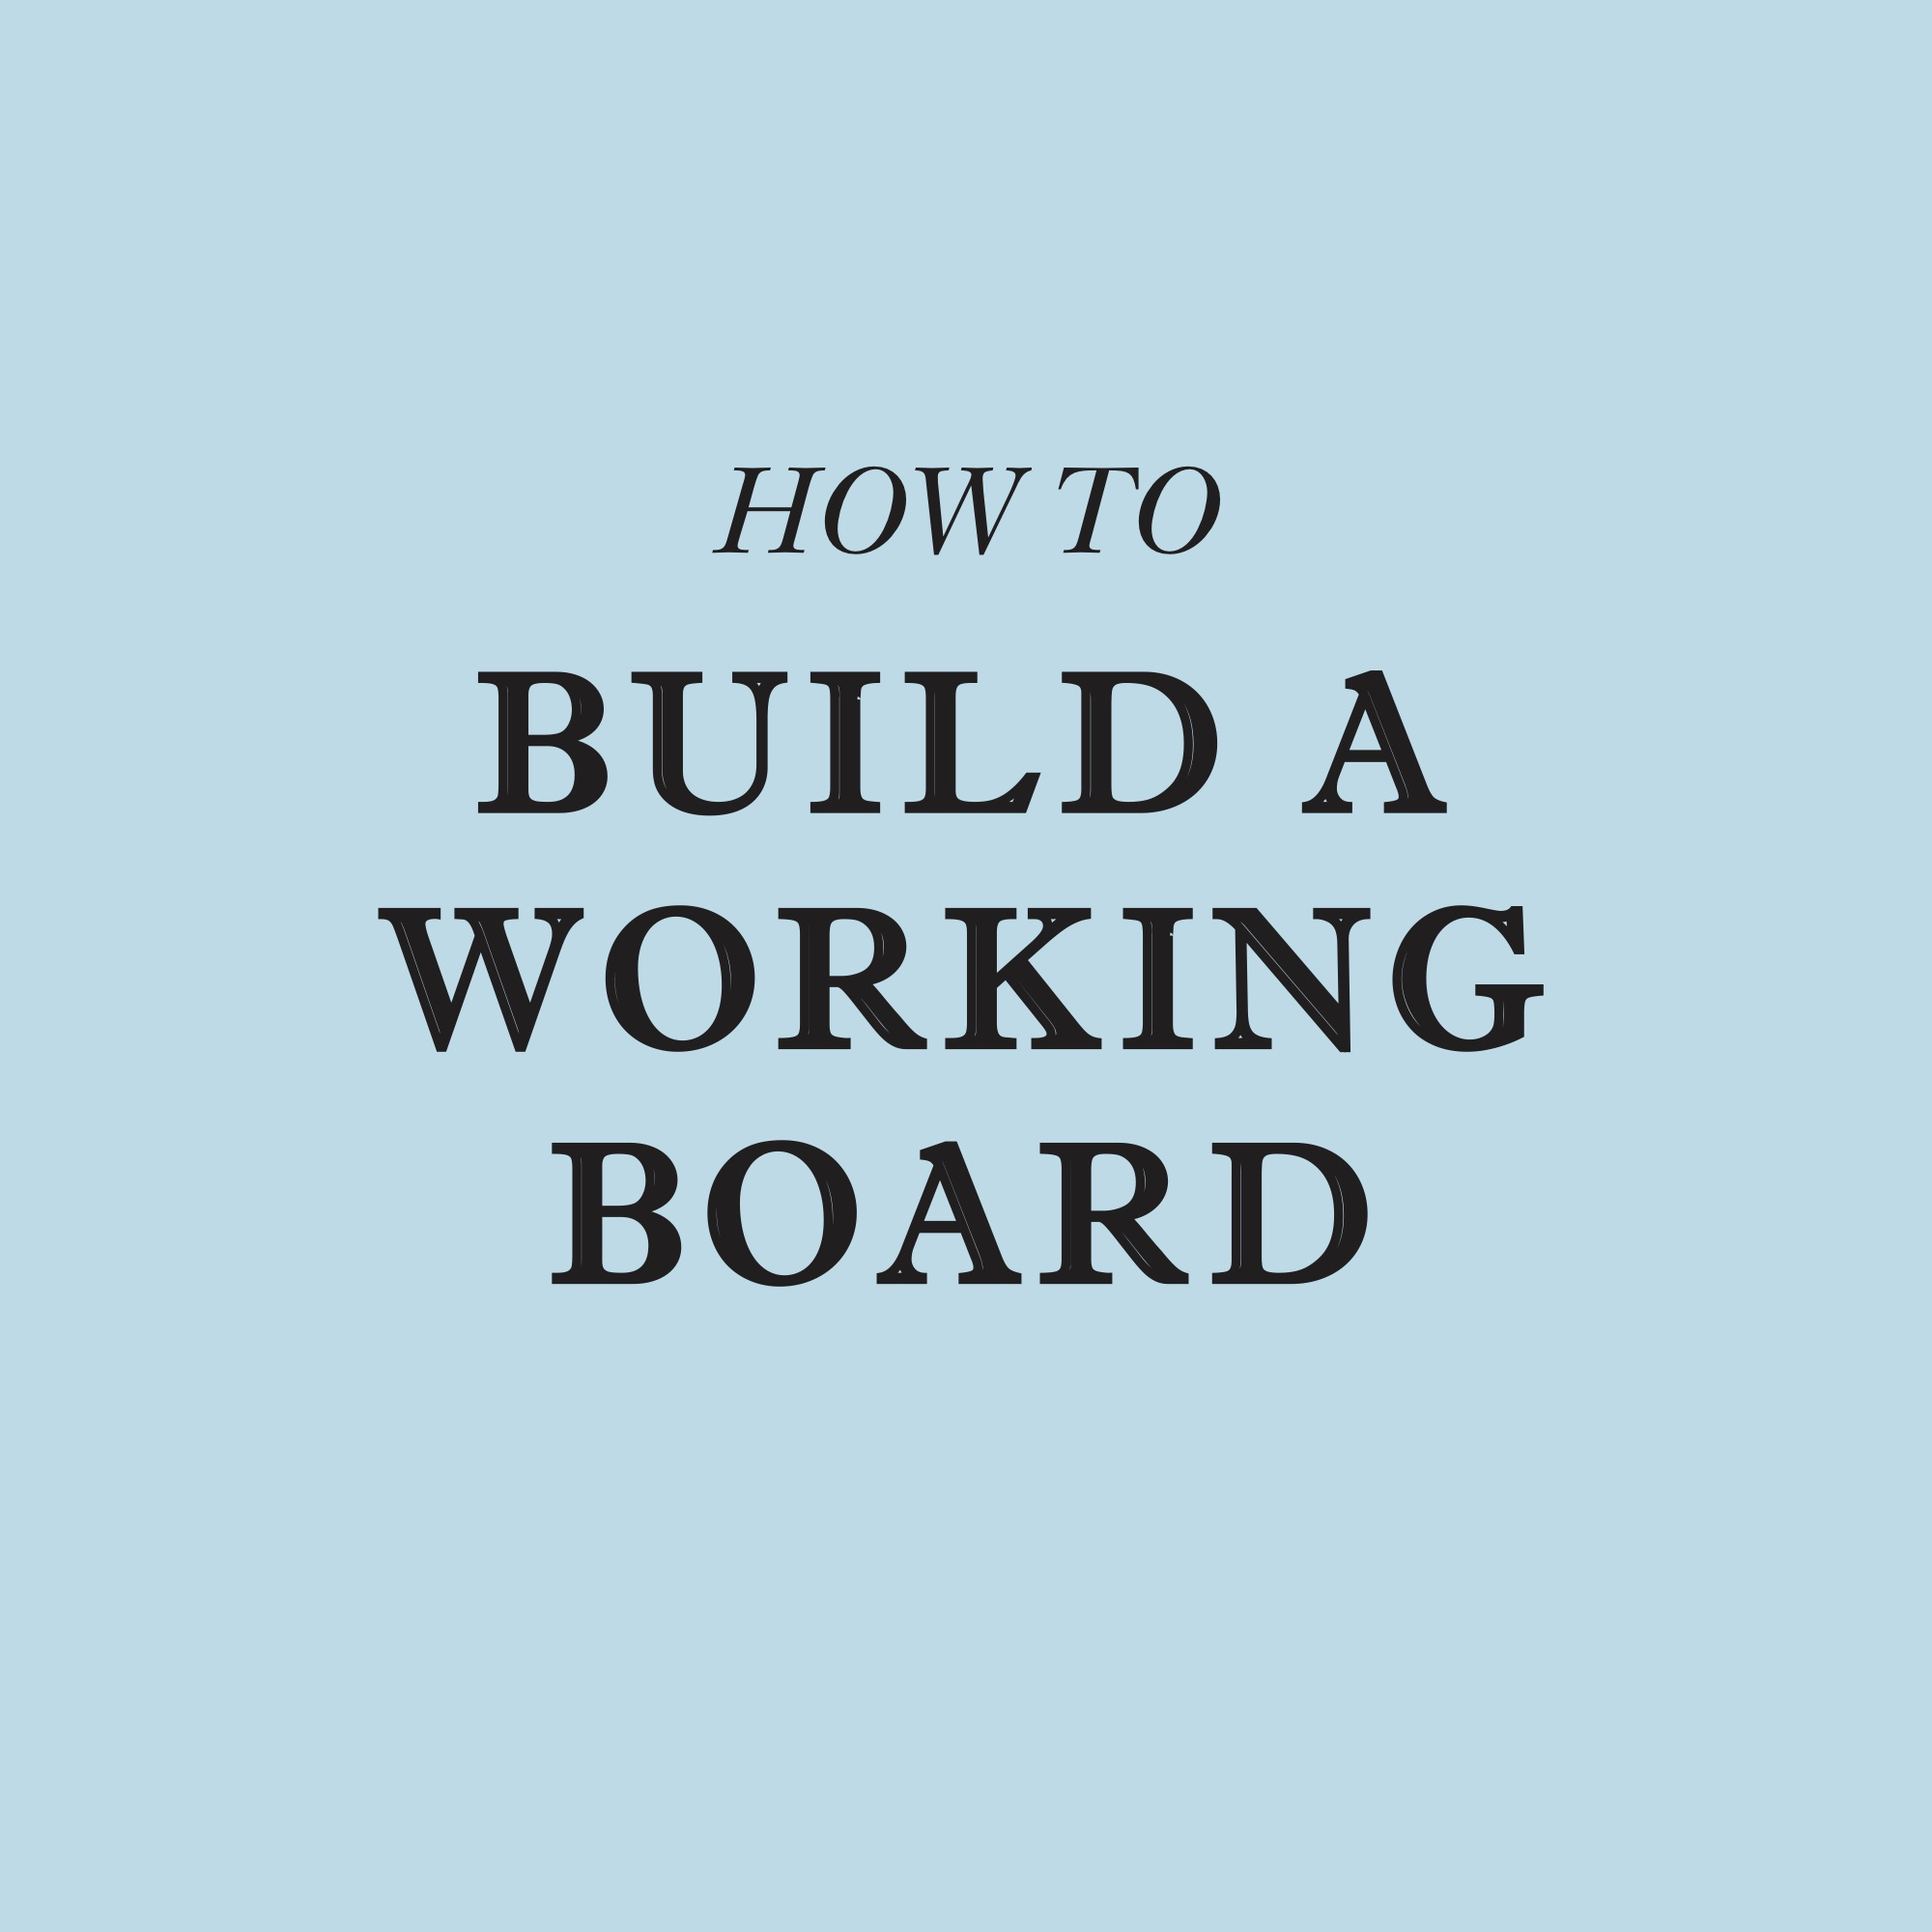 WorkingBoard_Layout 1.jpg